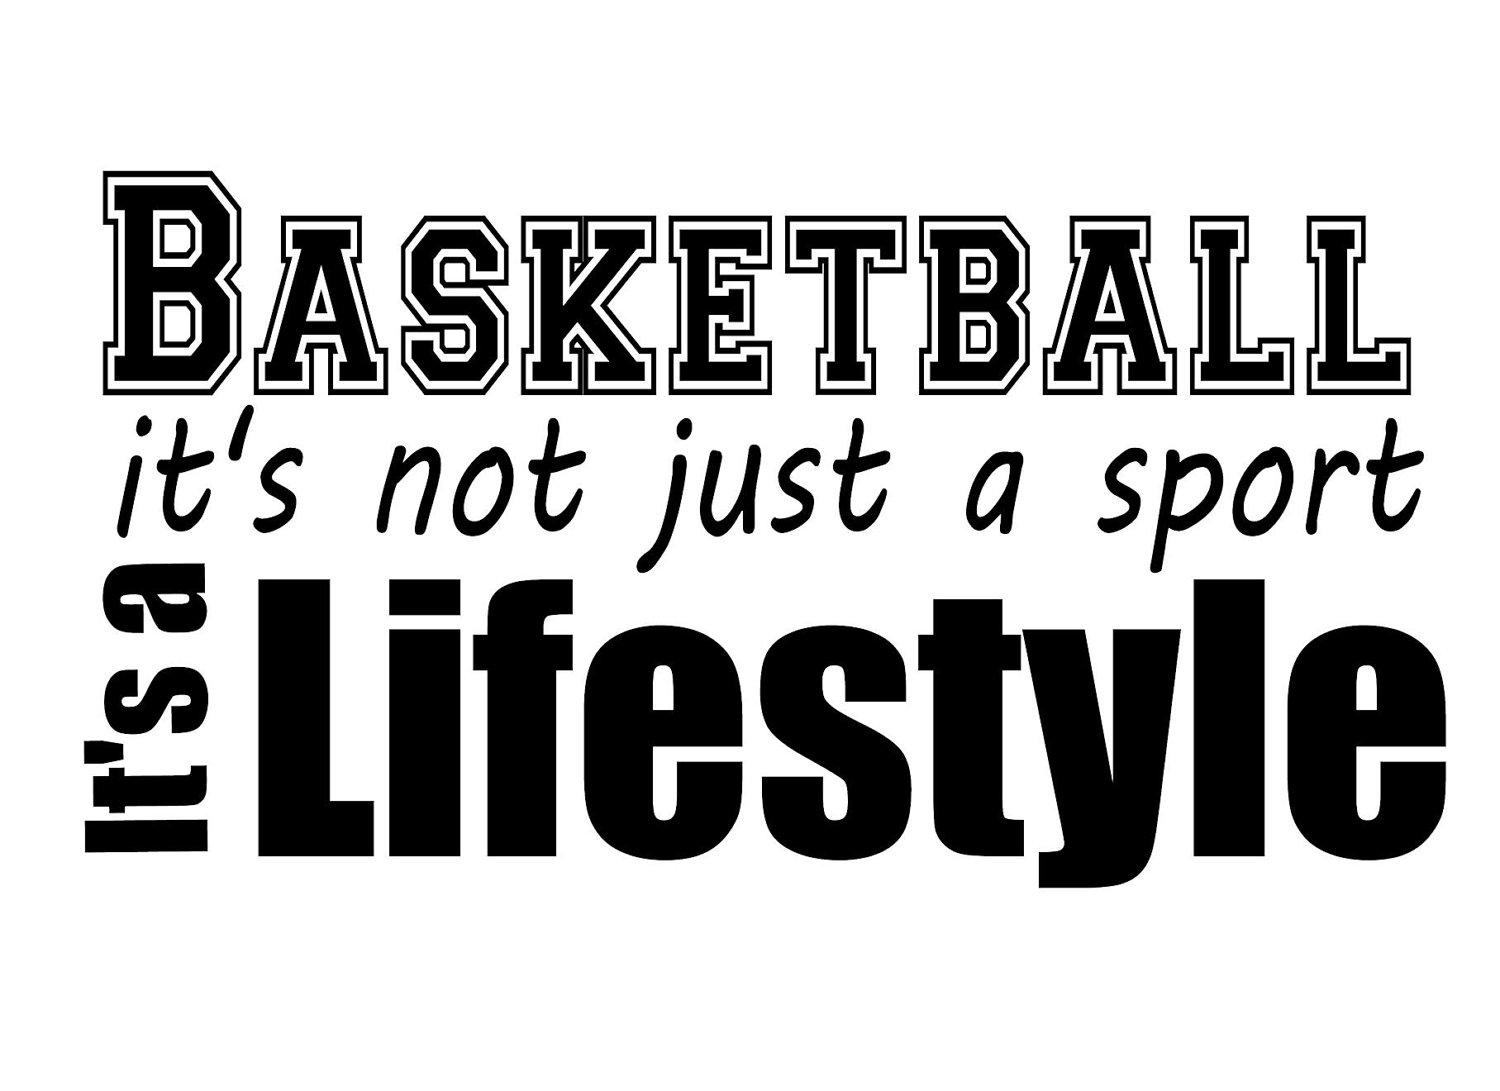 Basketball Quotes About Working Hard. QuotesGram